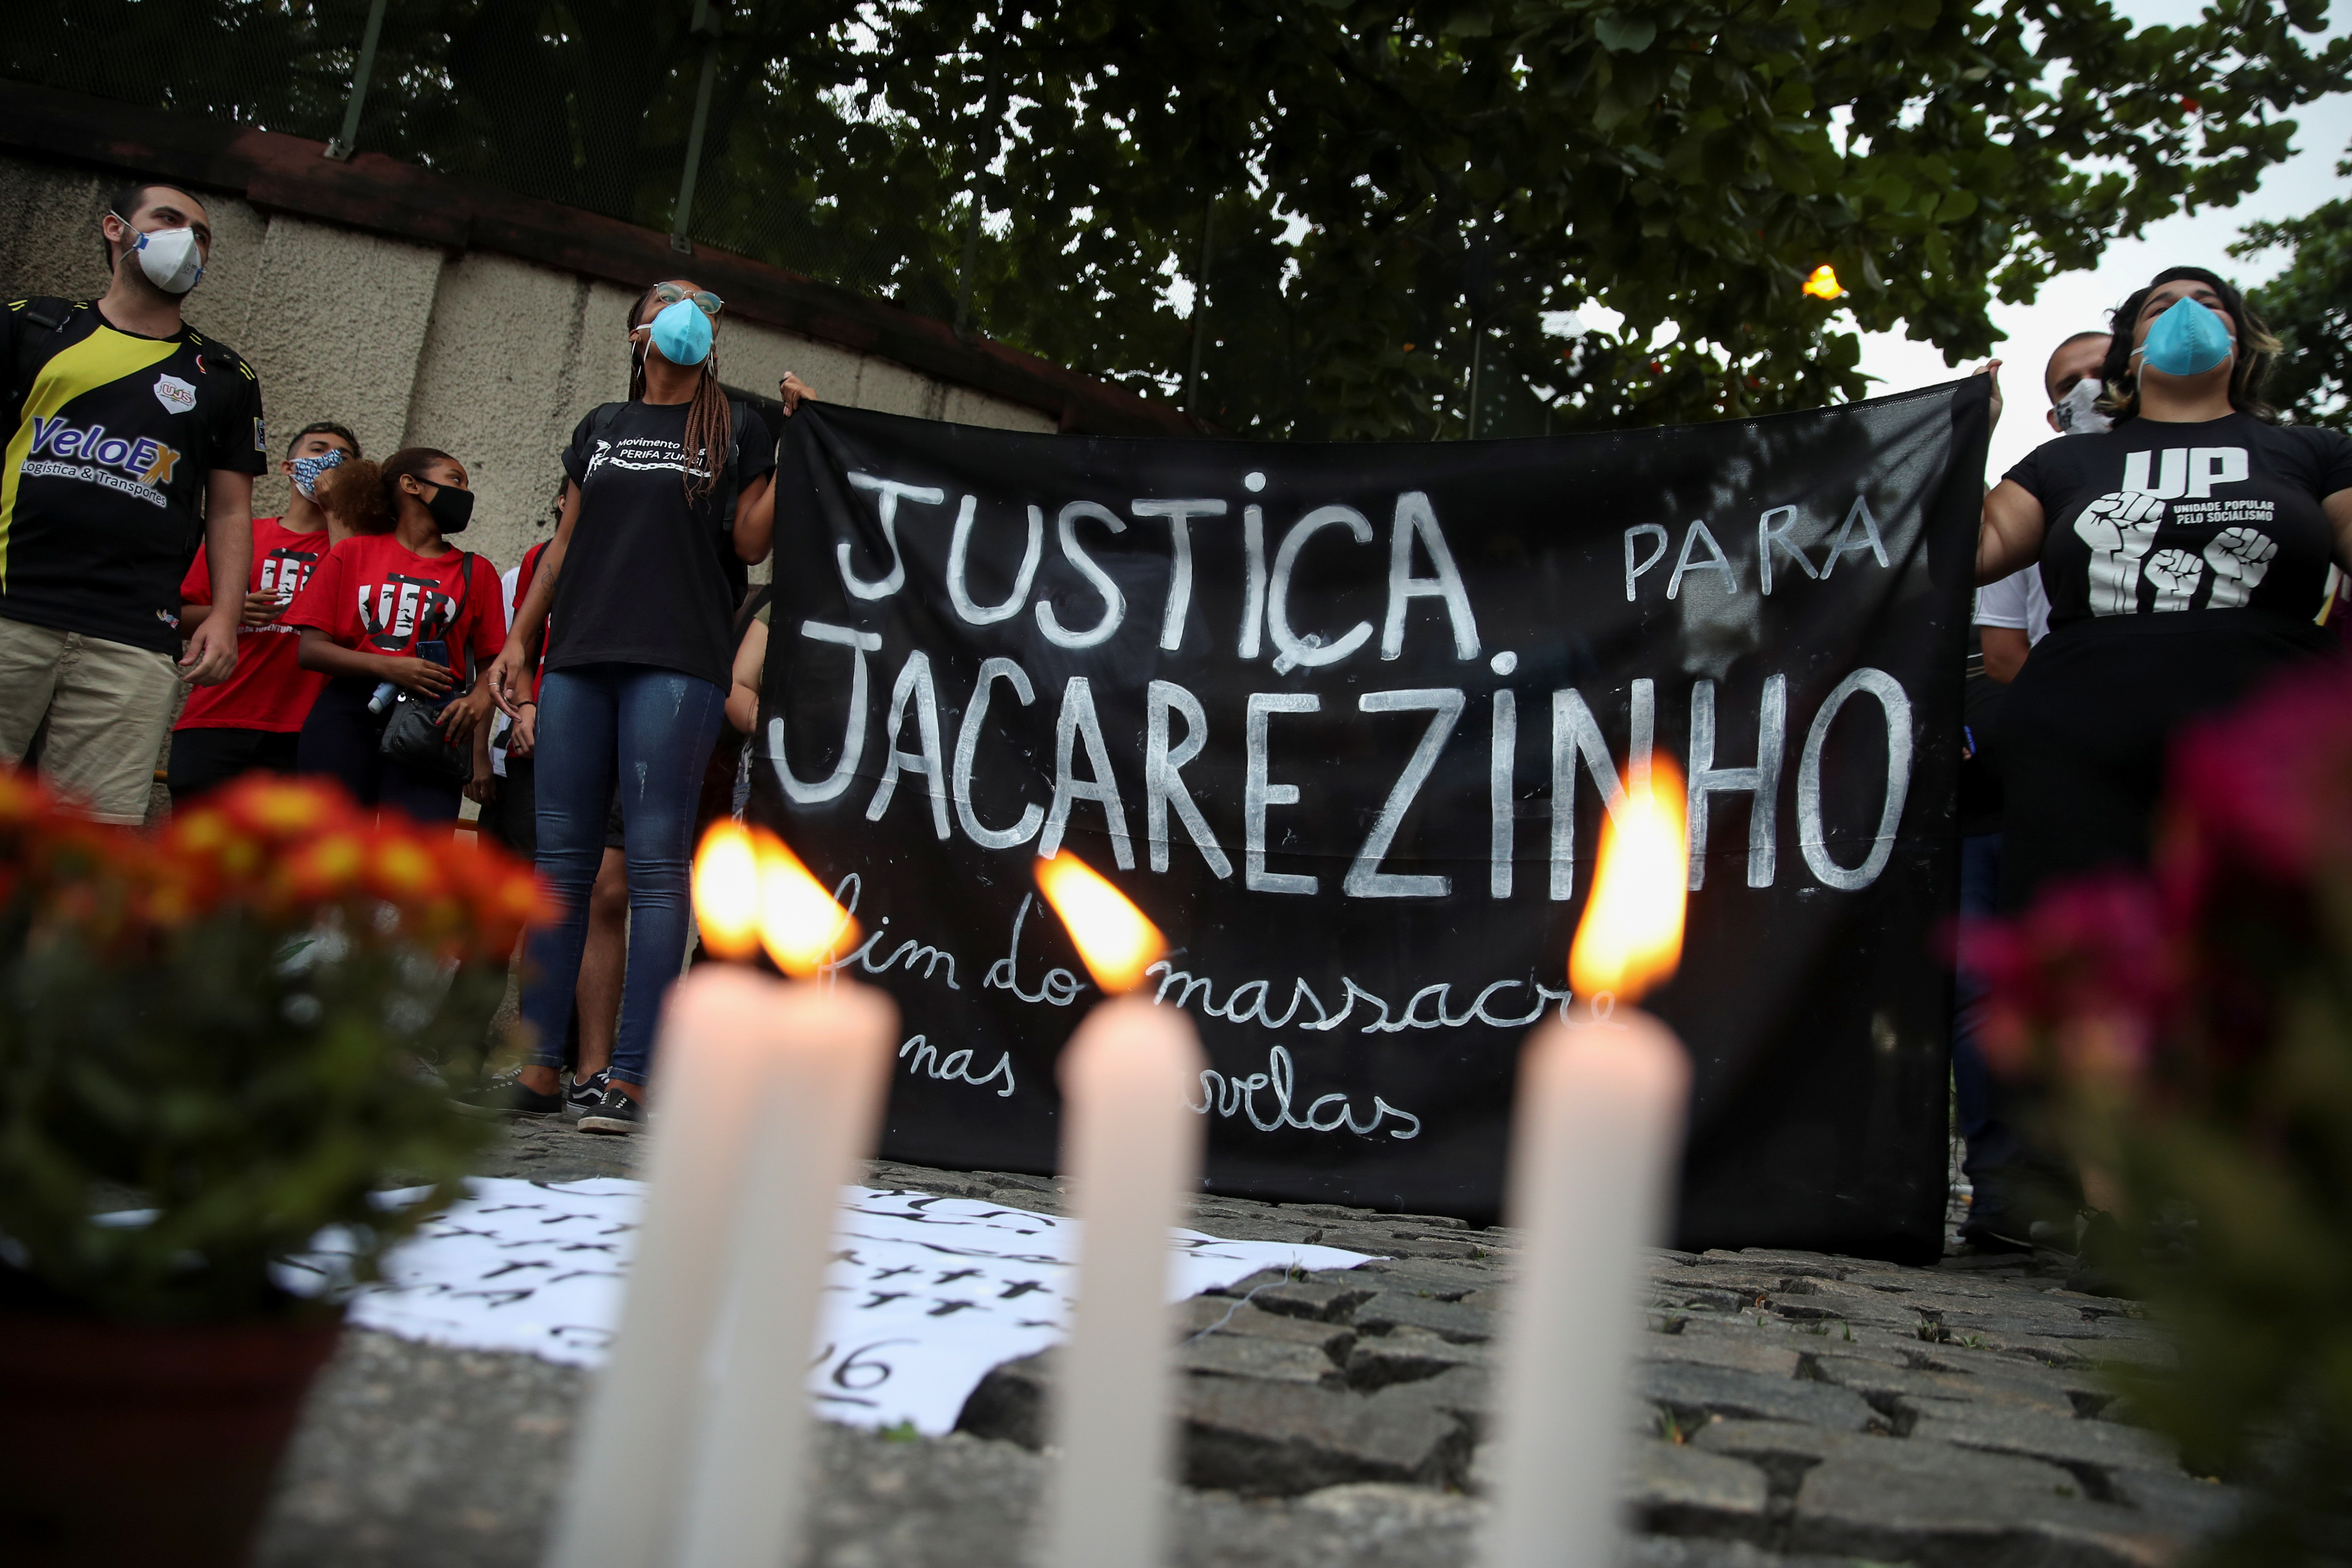 People attend a protest against police violence outside Jacarezinho slum after a police operation which resulted in 25 deaths in Rio de Janeiro, Brazil, May 7, 2021. Banner reads: